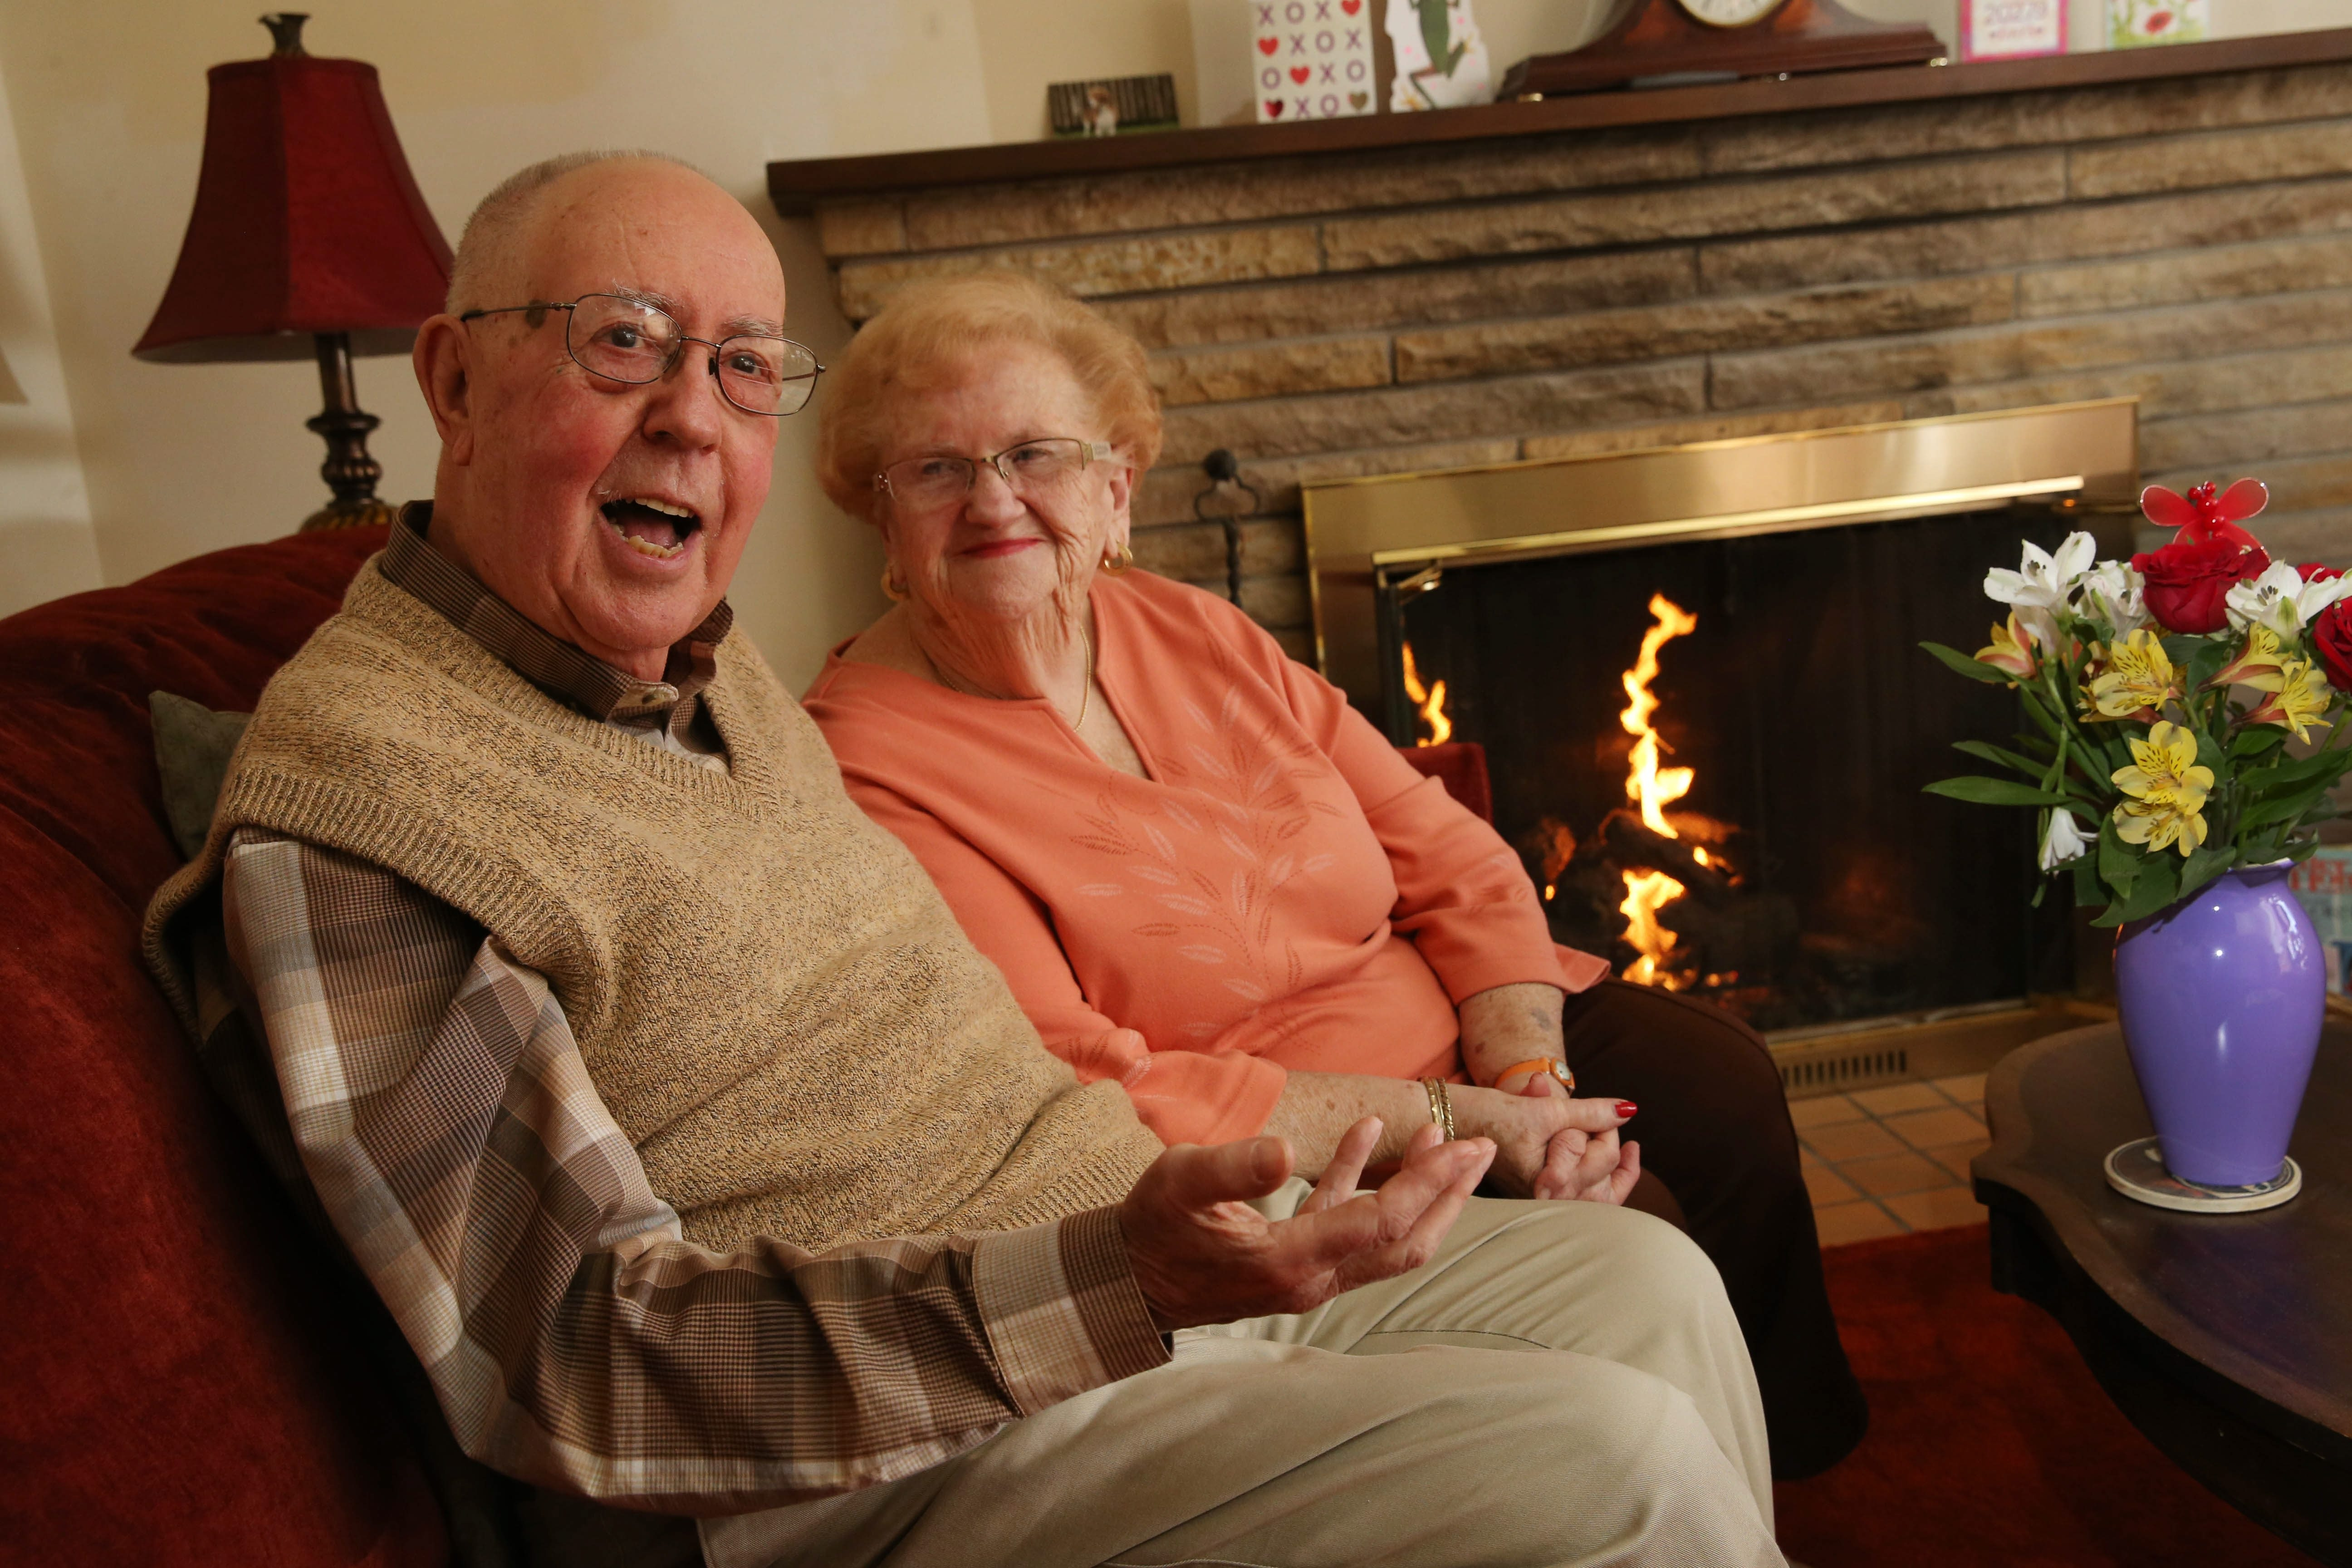 Doug Smith and his wife, Polly, at their Grand Island home. The couple is leaving the area to be closer to their daughter in Cortland.